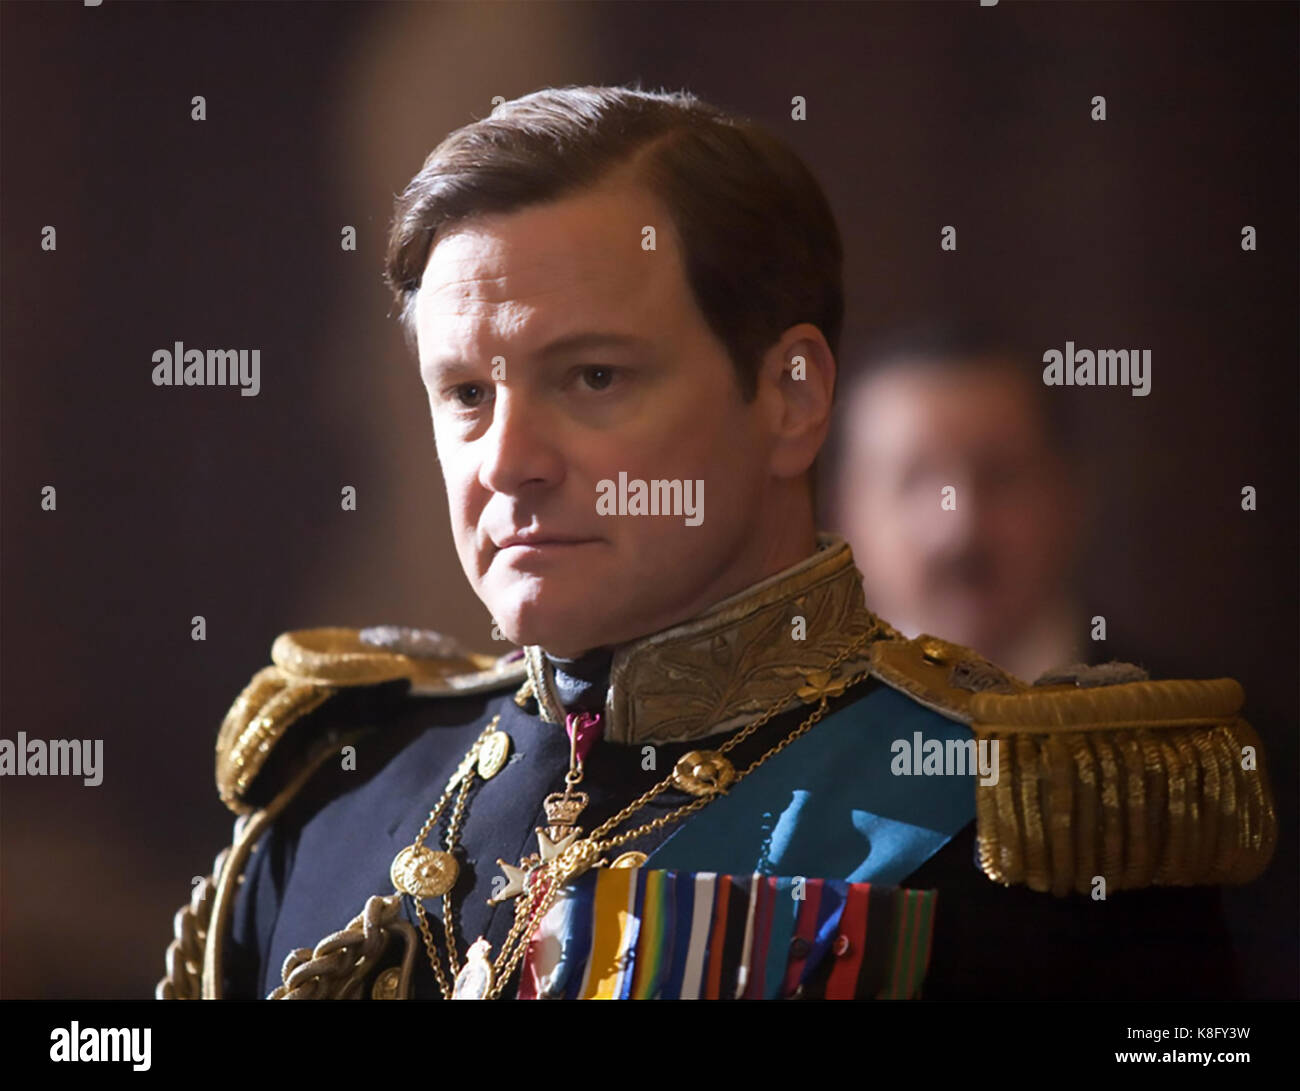 THE KING'S SPEECH 2010 See-Saw Films production with Colin Firth as King George VI - Stock Image